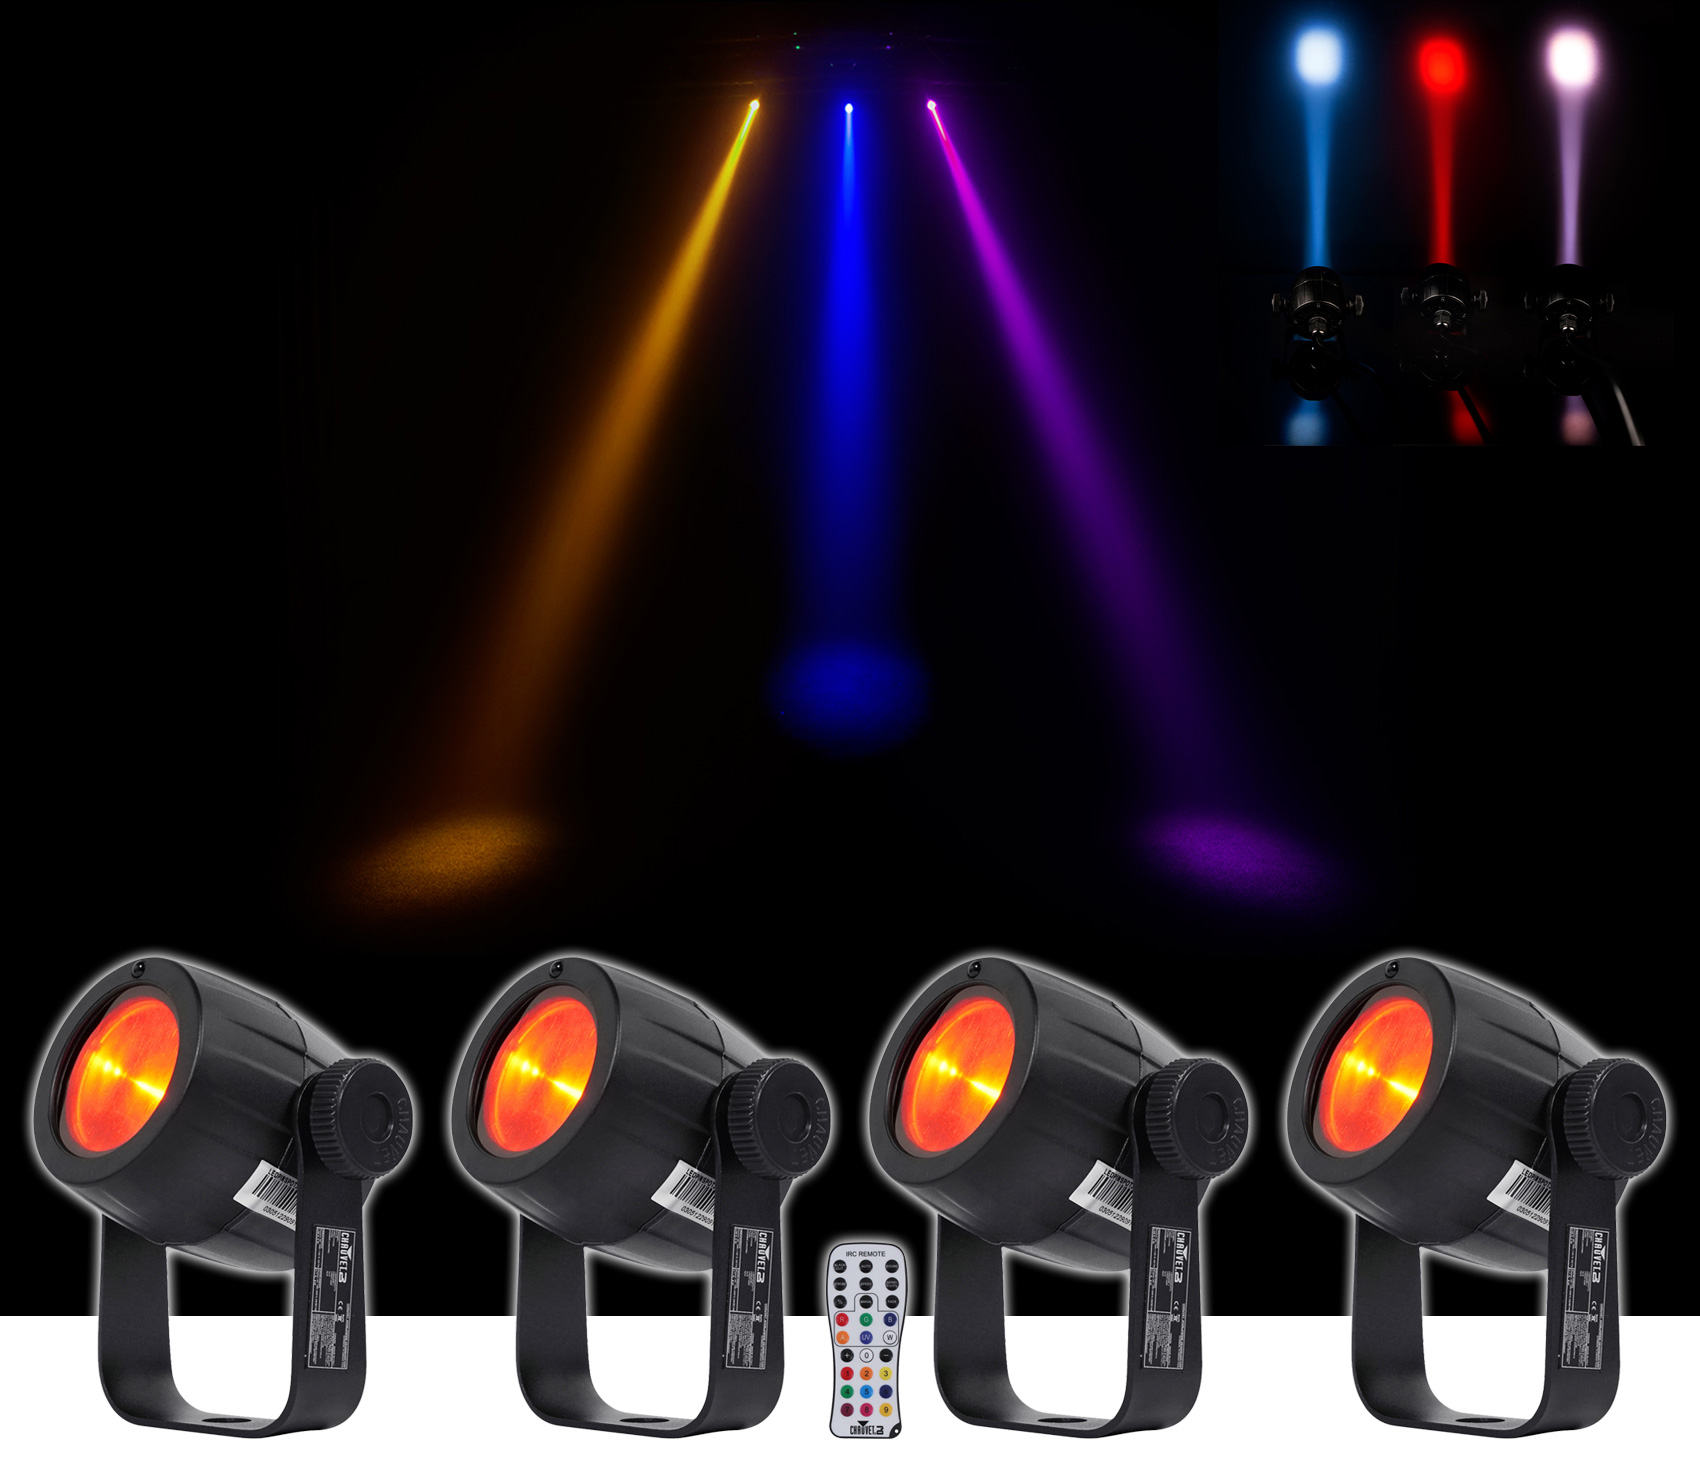 4) Chauvet DJ LED Pinspot 3 Club Mirror Ball Spot Light w Dimmer+Gel Pack+Remote by CHAUVET